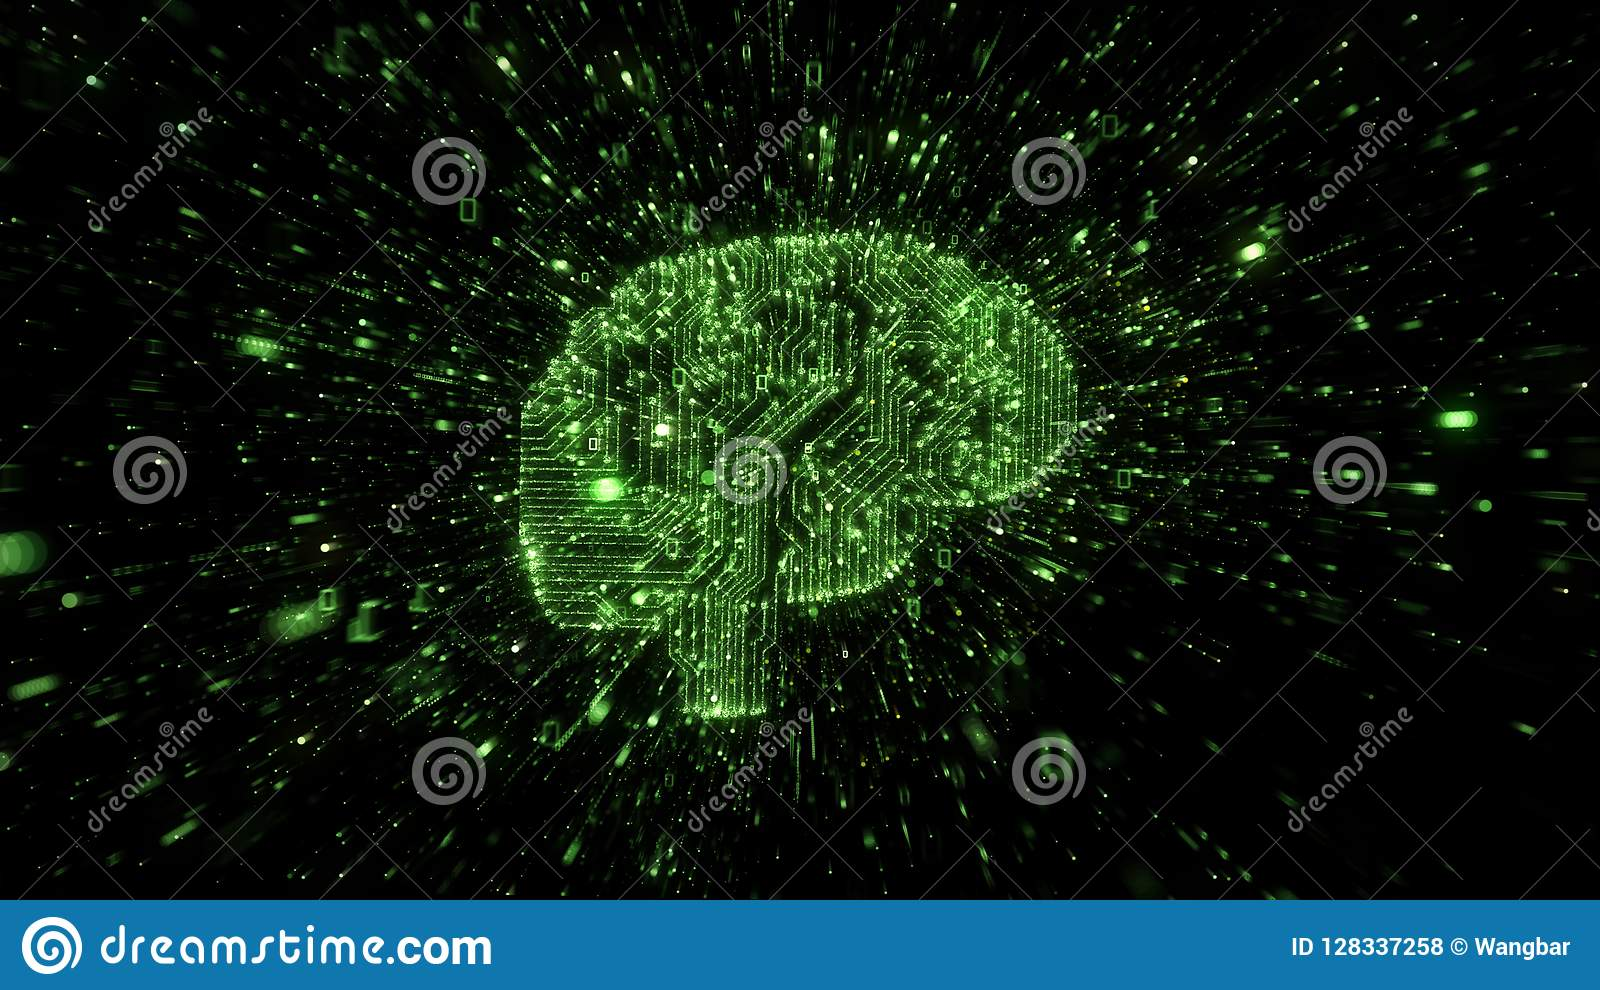 Explosion of binary data around green brain illustrated as digital circuitry